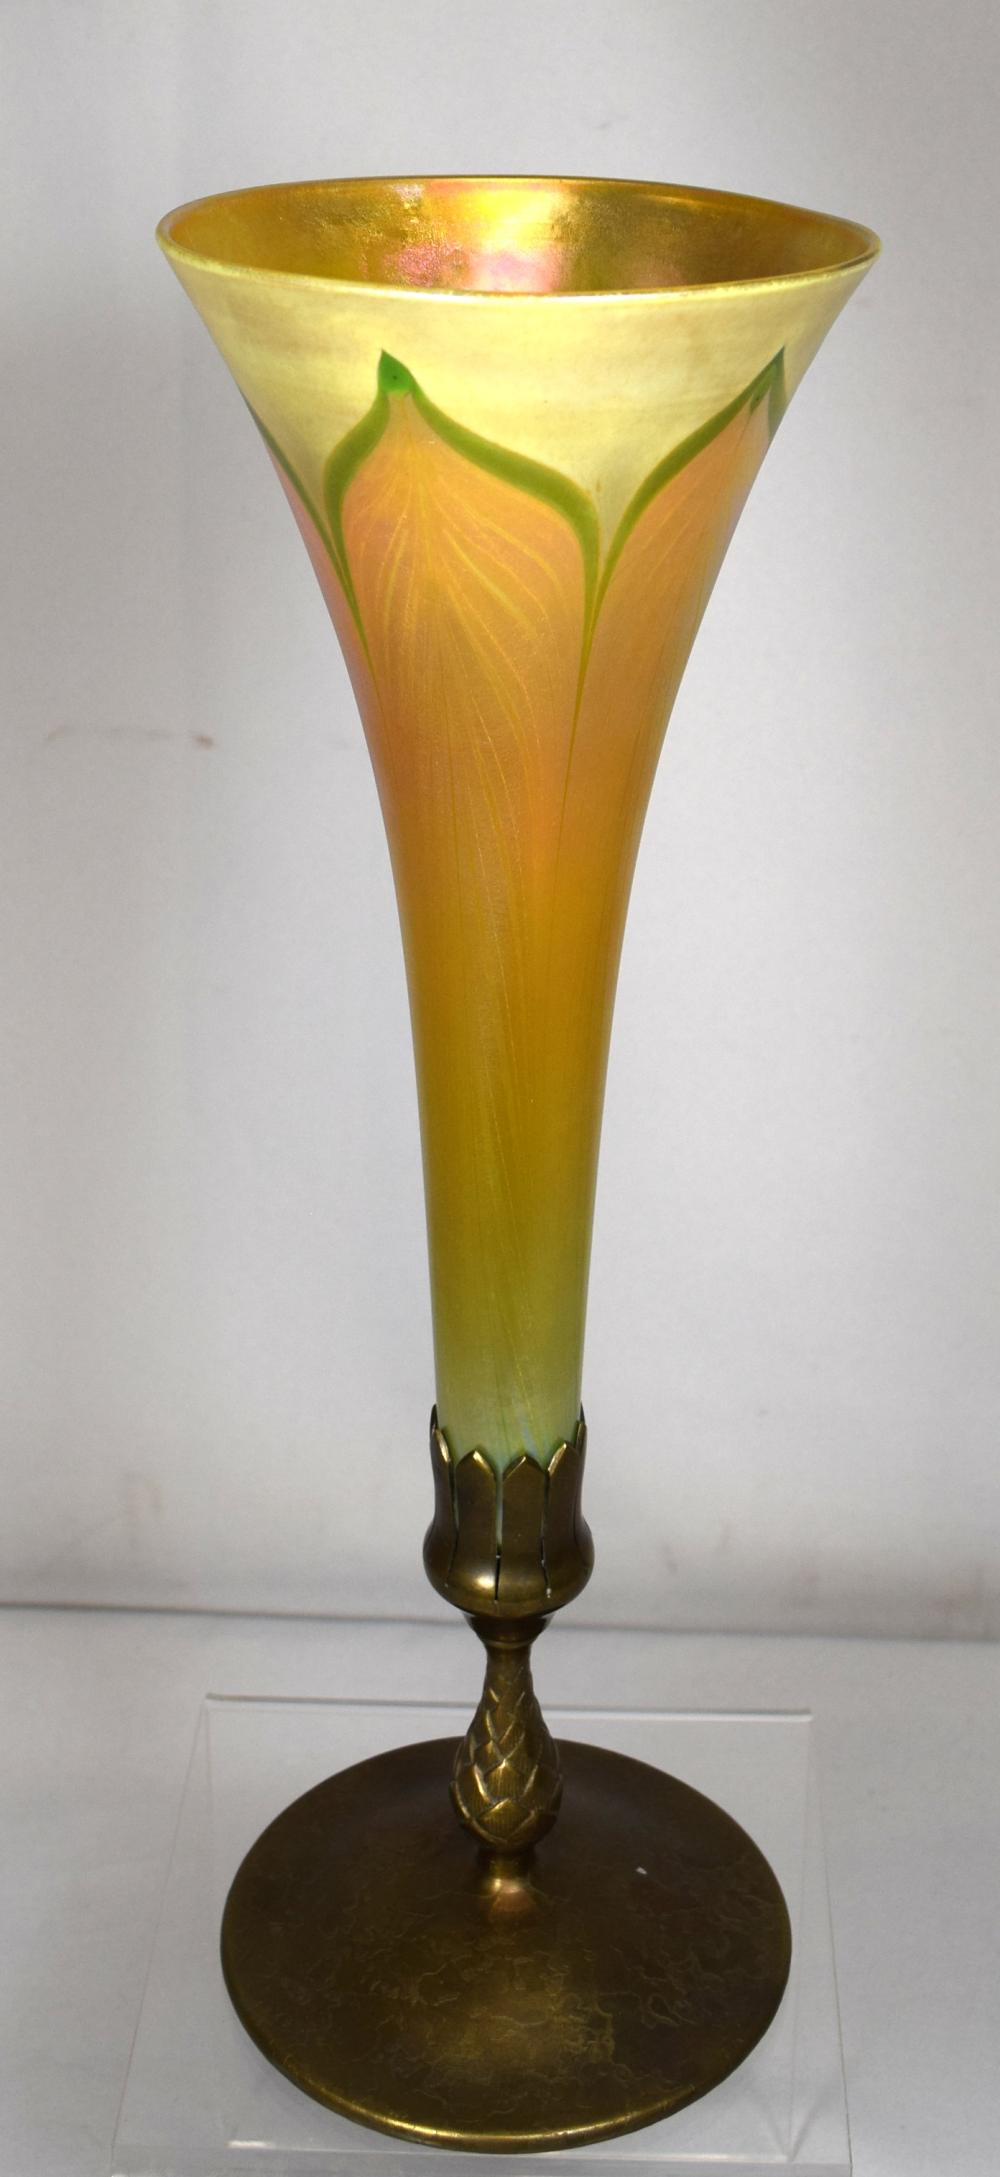 TIFFANY BRONZE MOUNTED PULLED FEATHER FAVRILLE TRUMPET VASE: